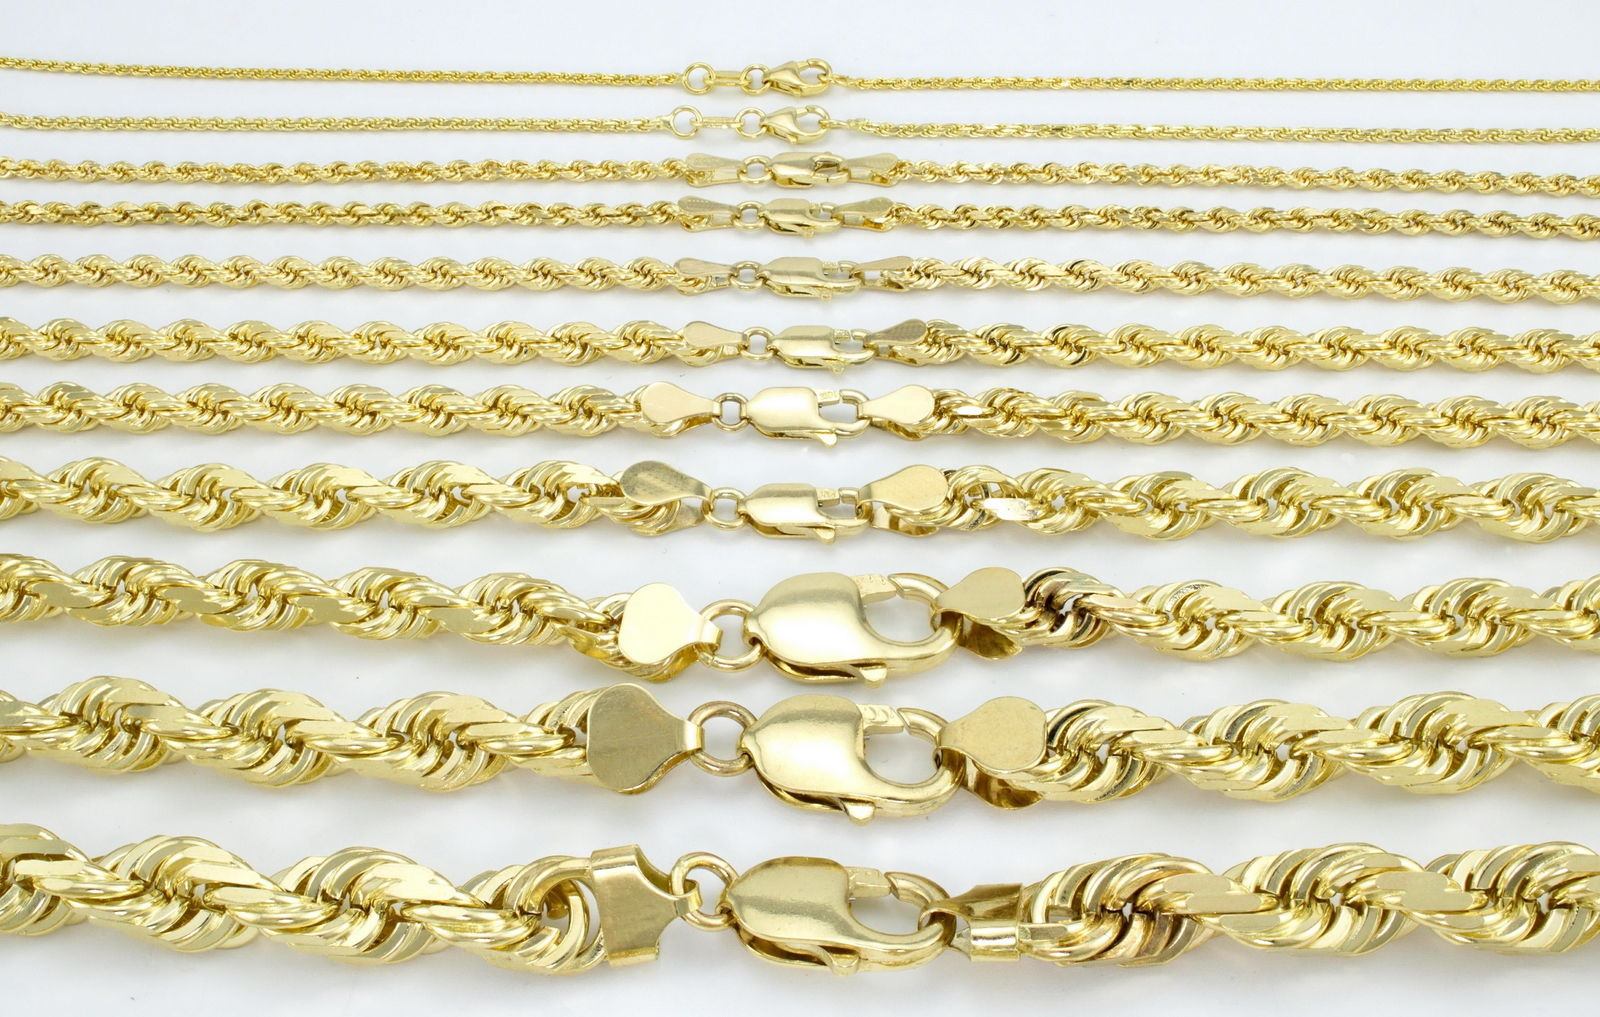 bcca3538bb0c ... REAL 10K Yellow Gold 2MM to 7MM Diamond Cut Rope Chain Pendant Necklace  16